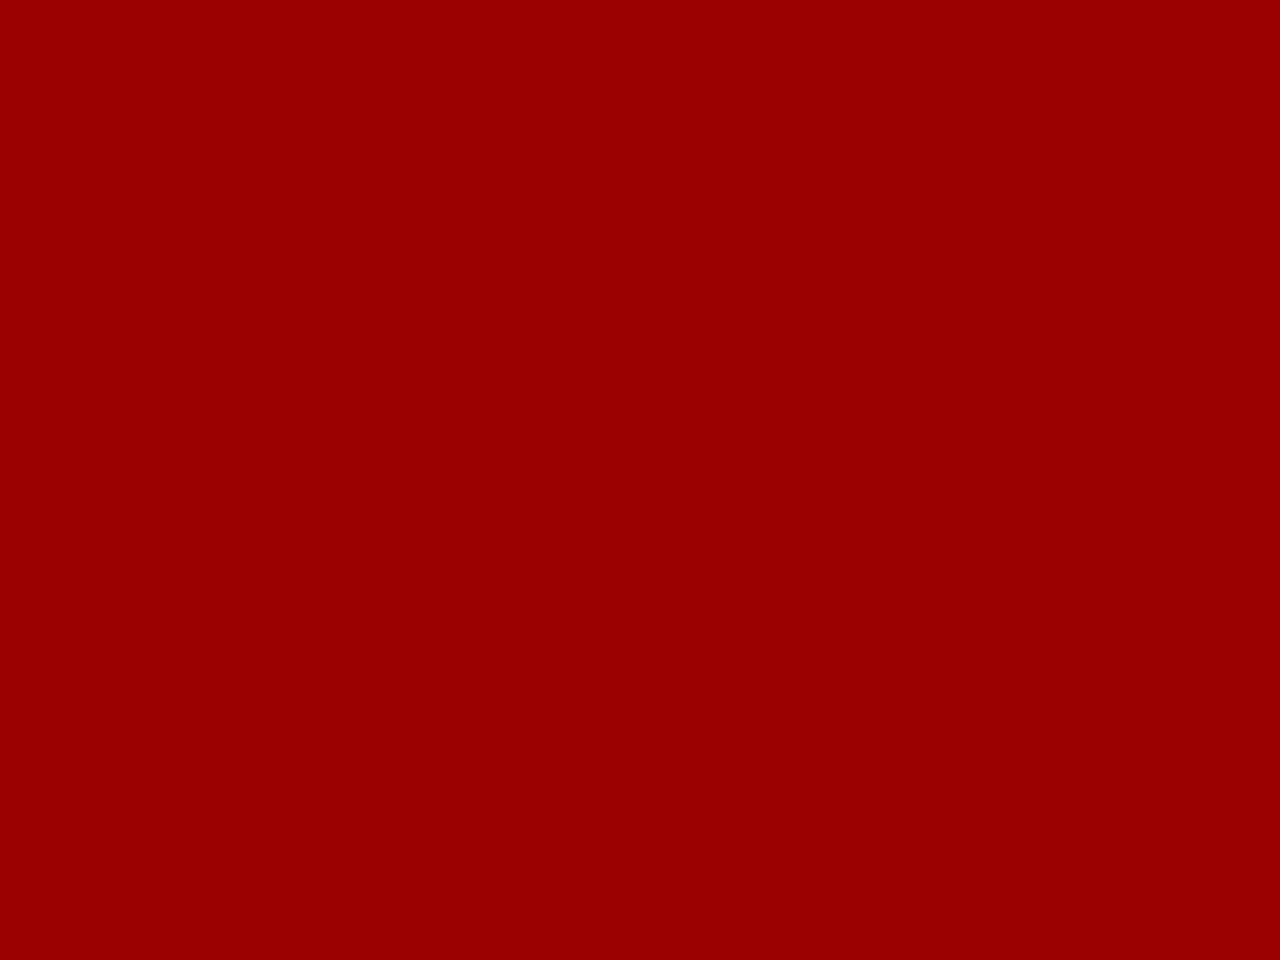 1280x960 OU Crimson Red Solid Color Background